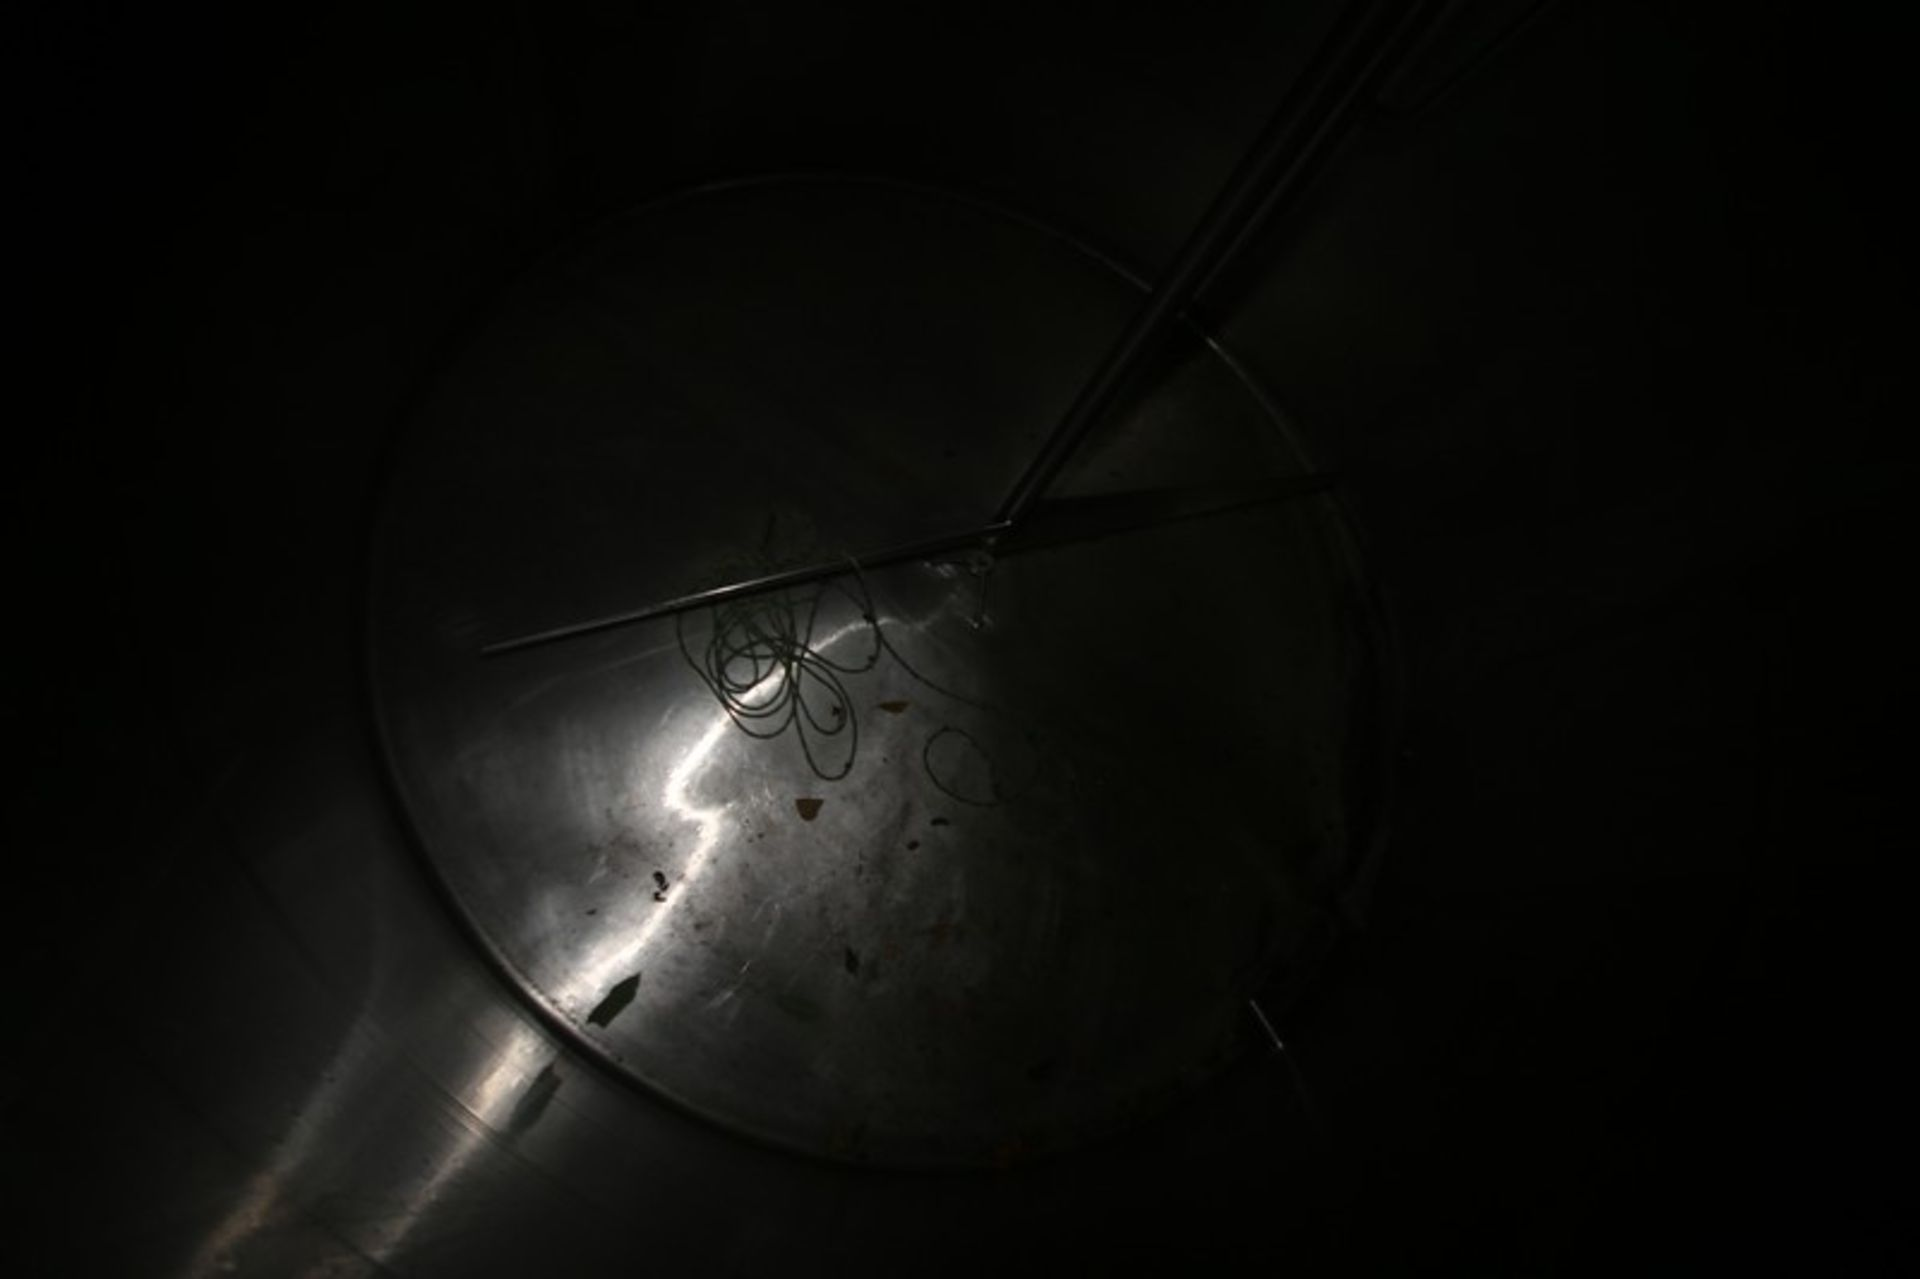 """Aprox. 2,300 Gal. S/S Processor, Tank Dims.: Aprox. 8' Diameter x 76"""" Straight Side, Dish Top, - Image 6 of 6"""